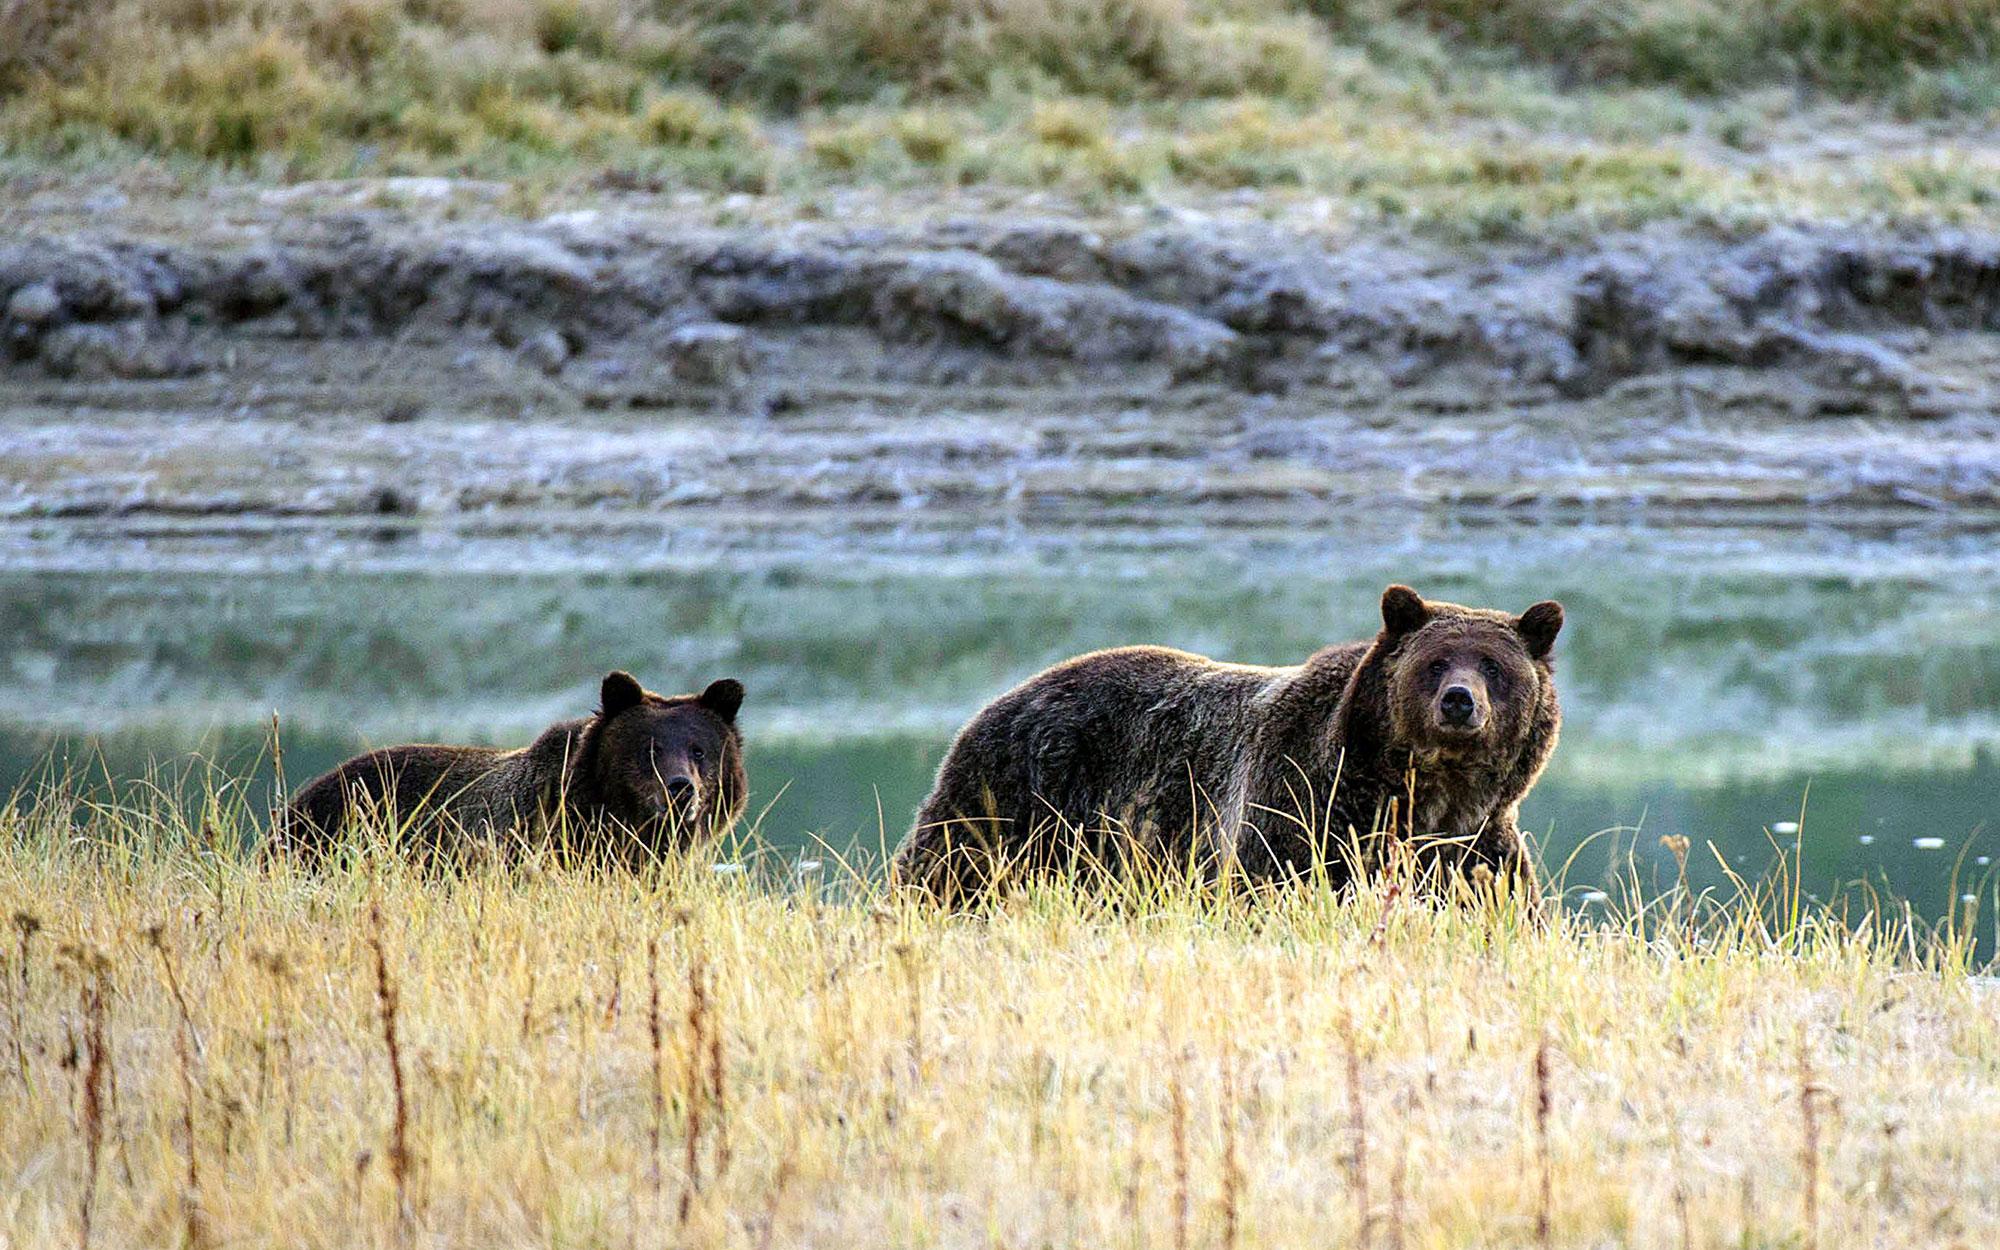 A Grizzly bear mother and her cub walk near Pelican Creek October 8, 2012 in the Yellowstone National Park in Wyoming.Yellowstone National Park is America's first national park. It was established in 1872. Yellowstone extends through Wyoming, Montana, and